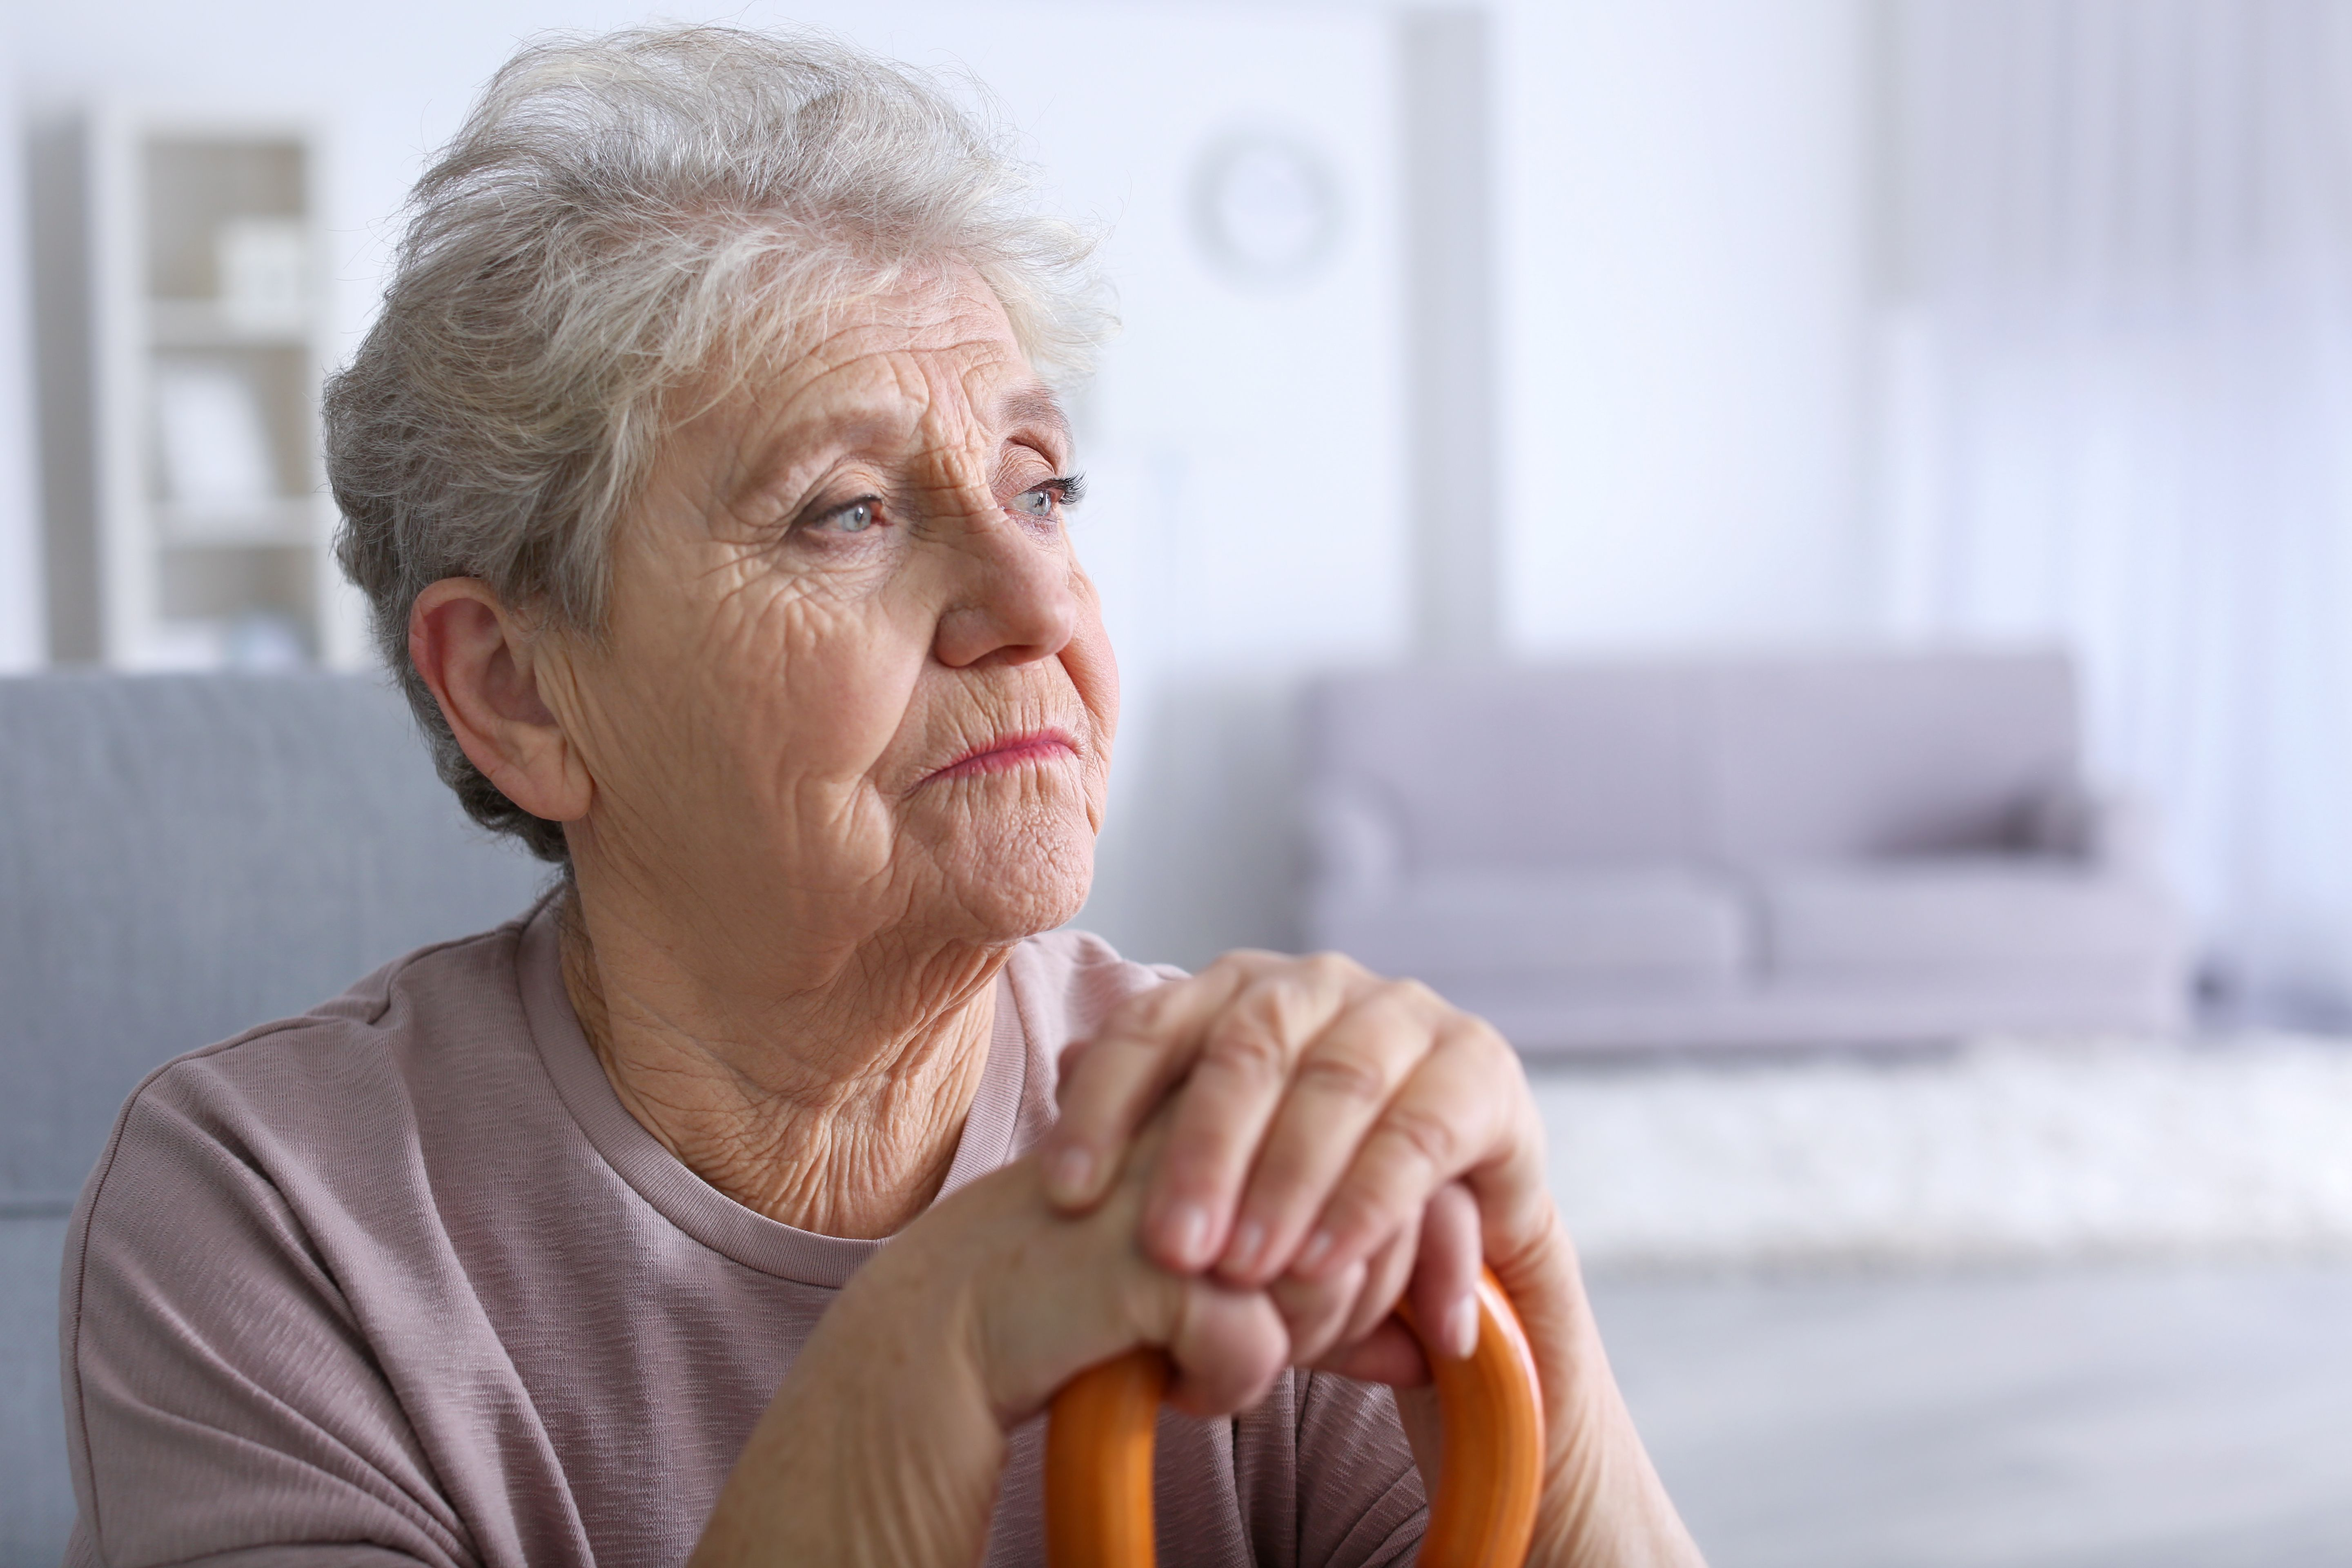 An elderly woman looks disappointed. | Source: Shutterstock